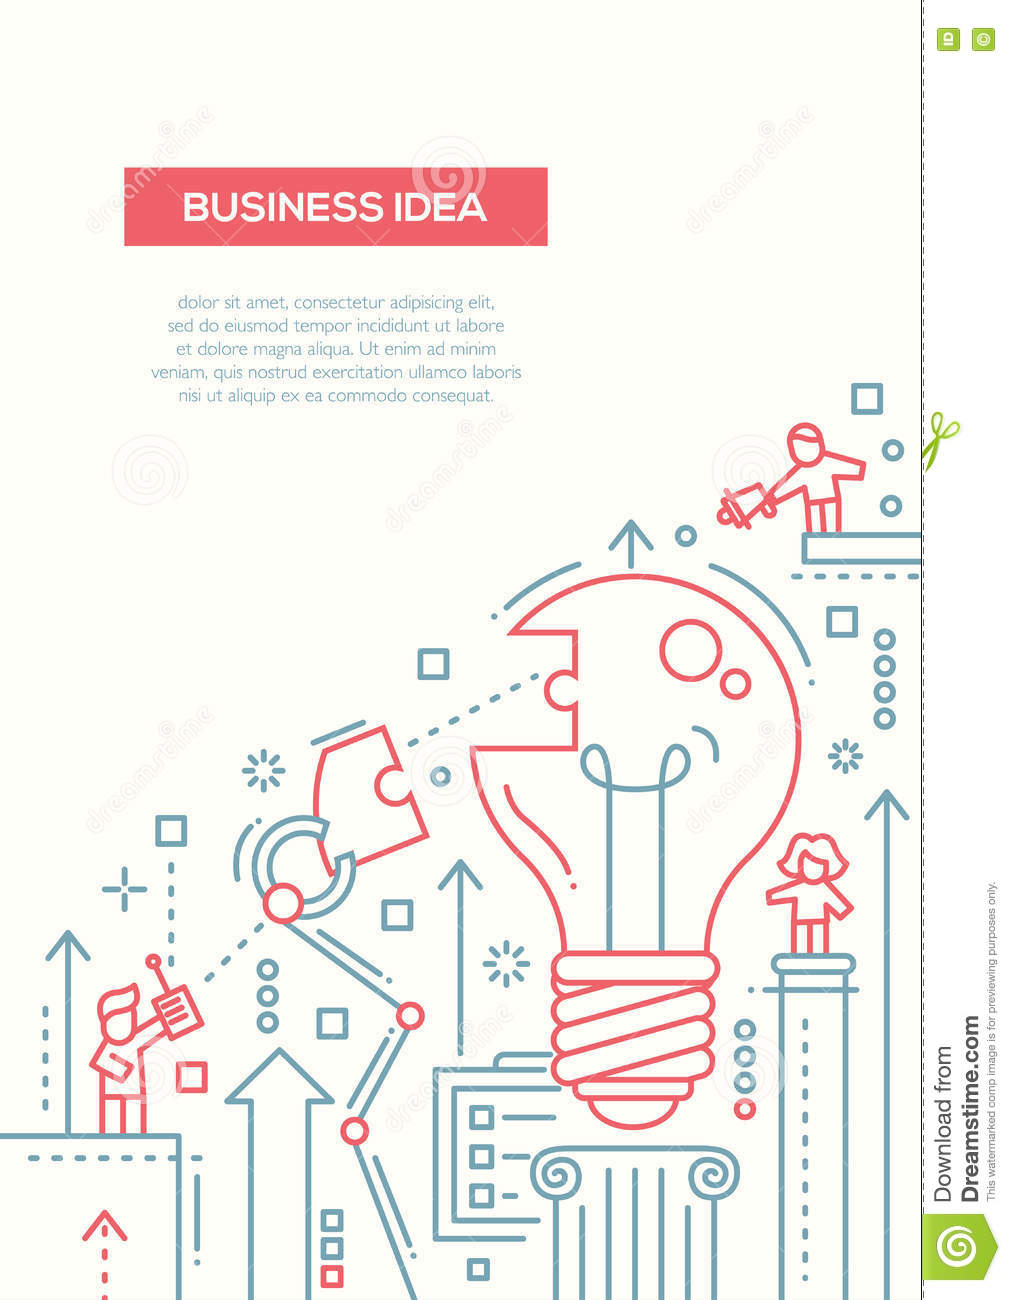 Business idea line design brochure poster template a4 stock vector download business idea line design brochure poster template a4 stock vector illustration of element wajeb Gallery